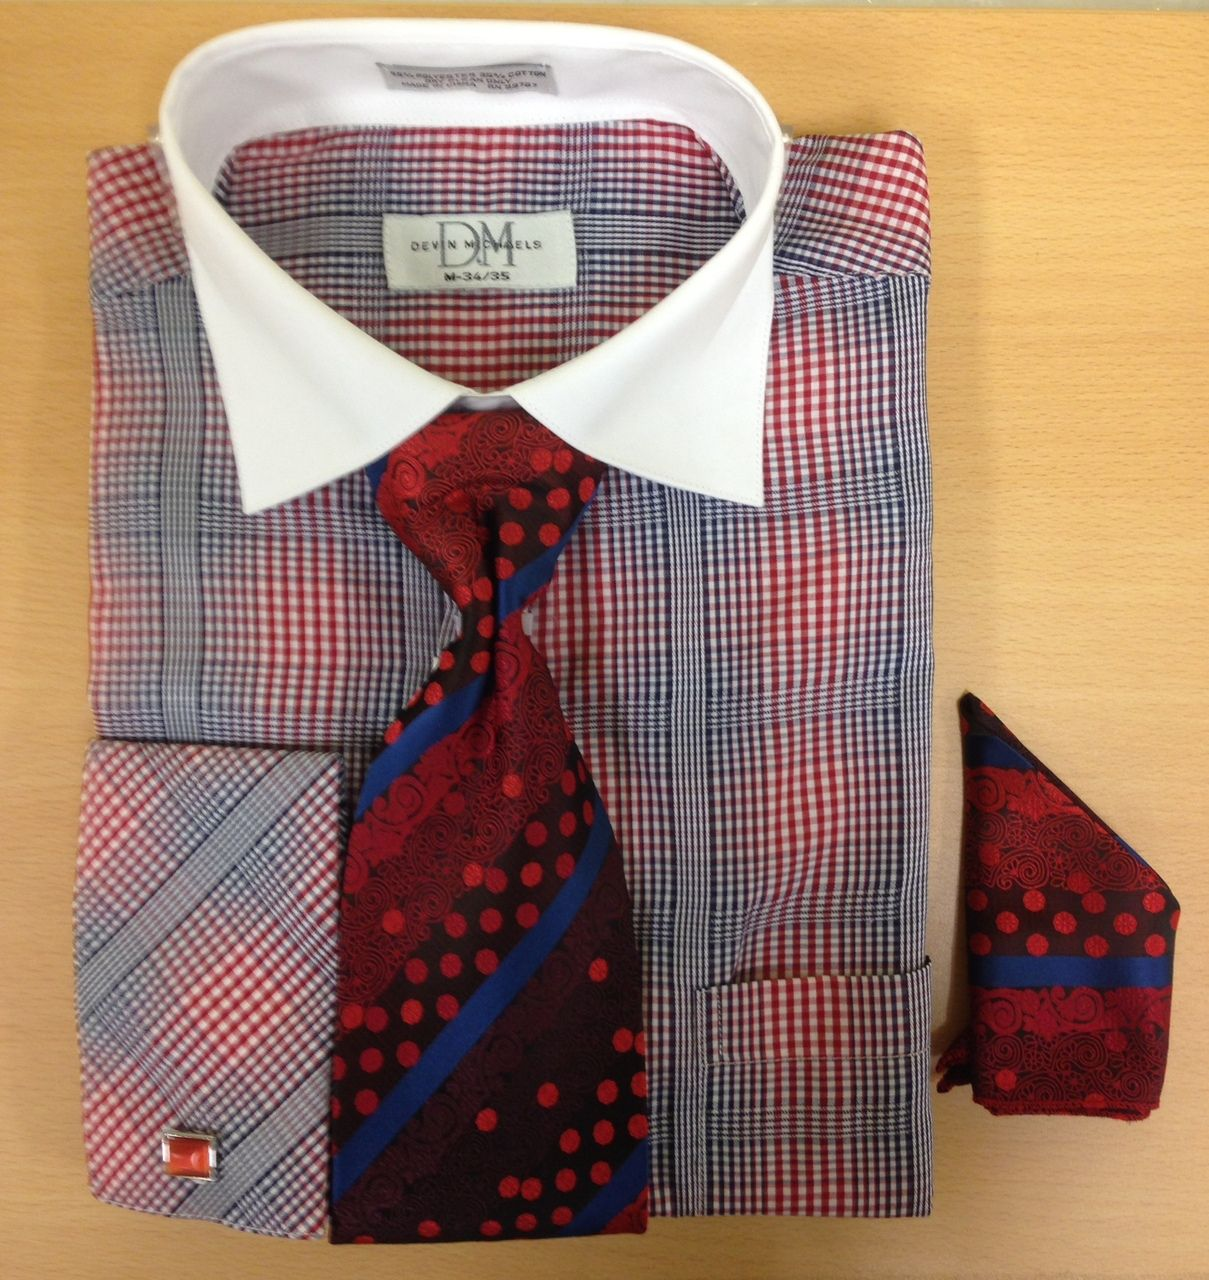 Men's Fashion Windowpane Checks Cufflink Dress Shirt Set - Red/Navy